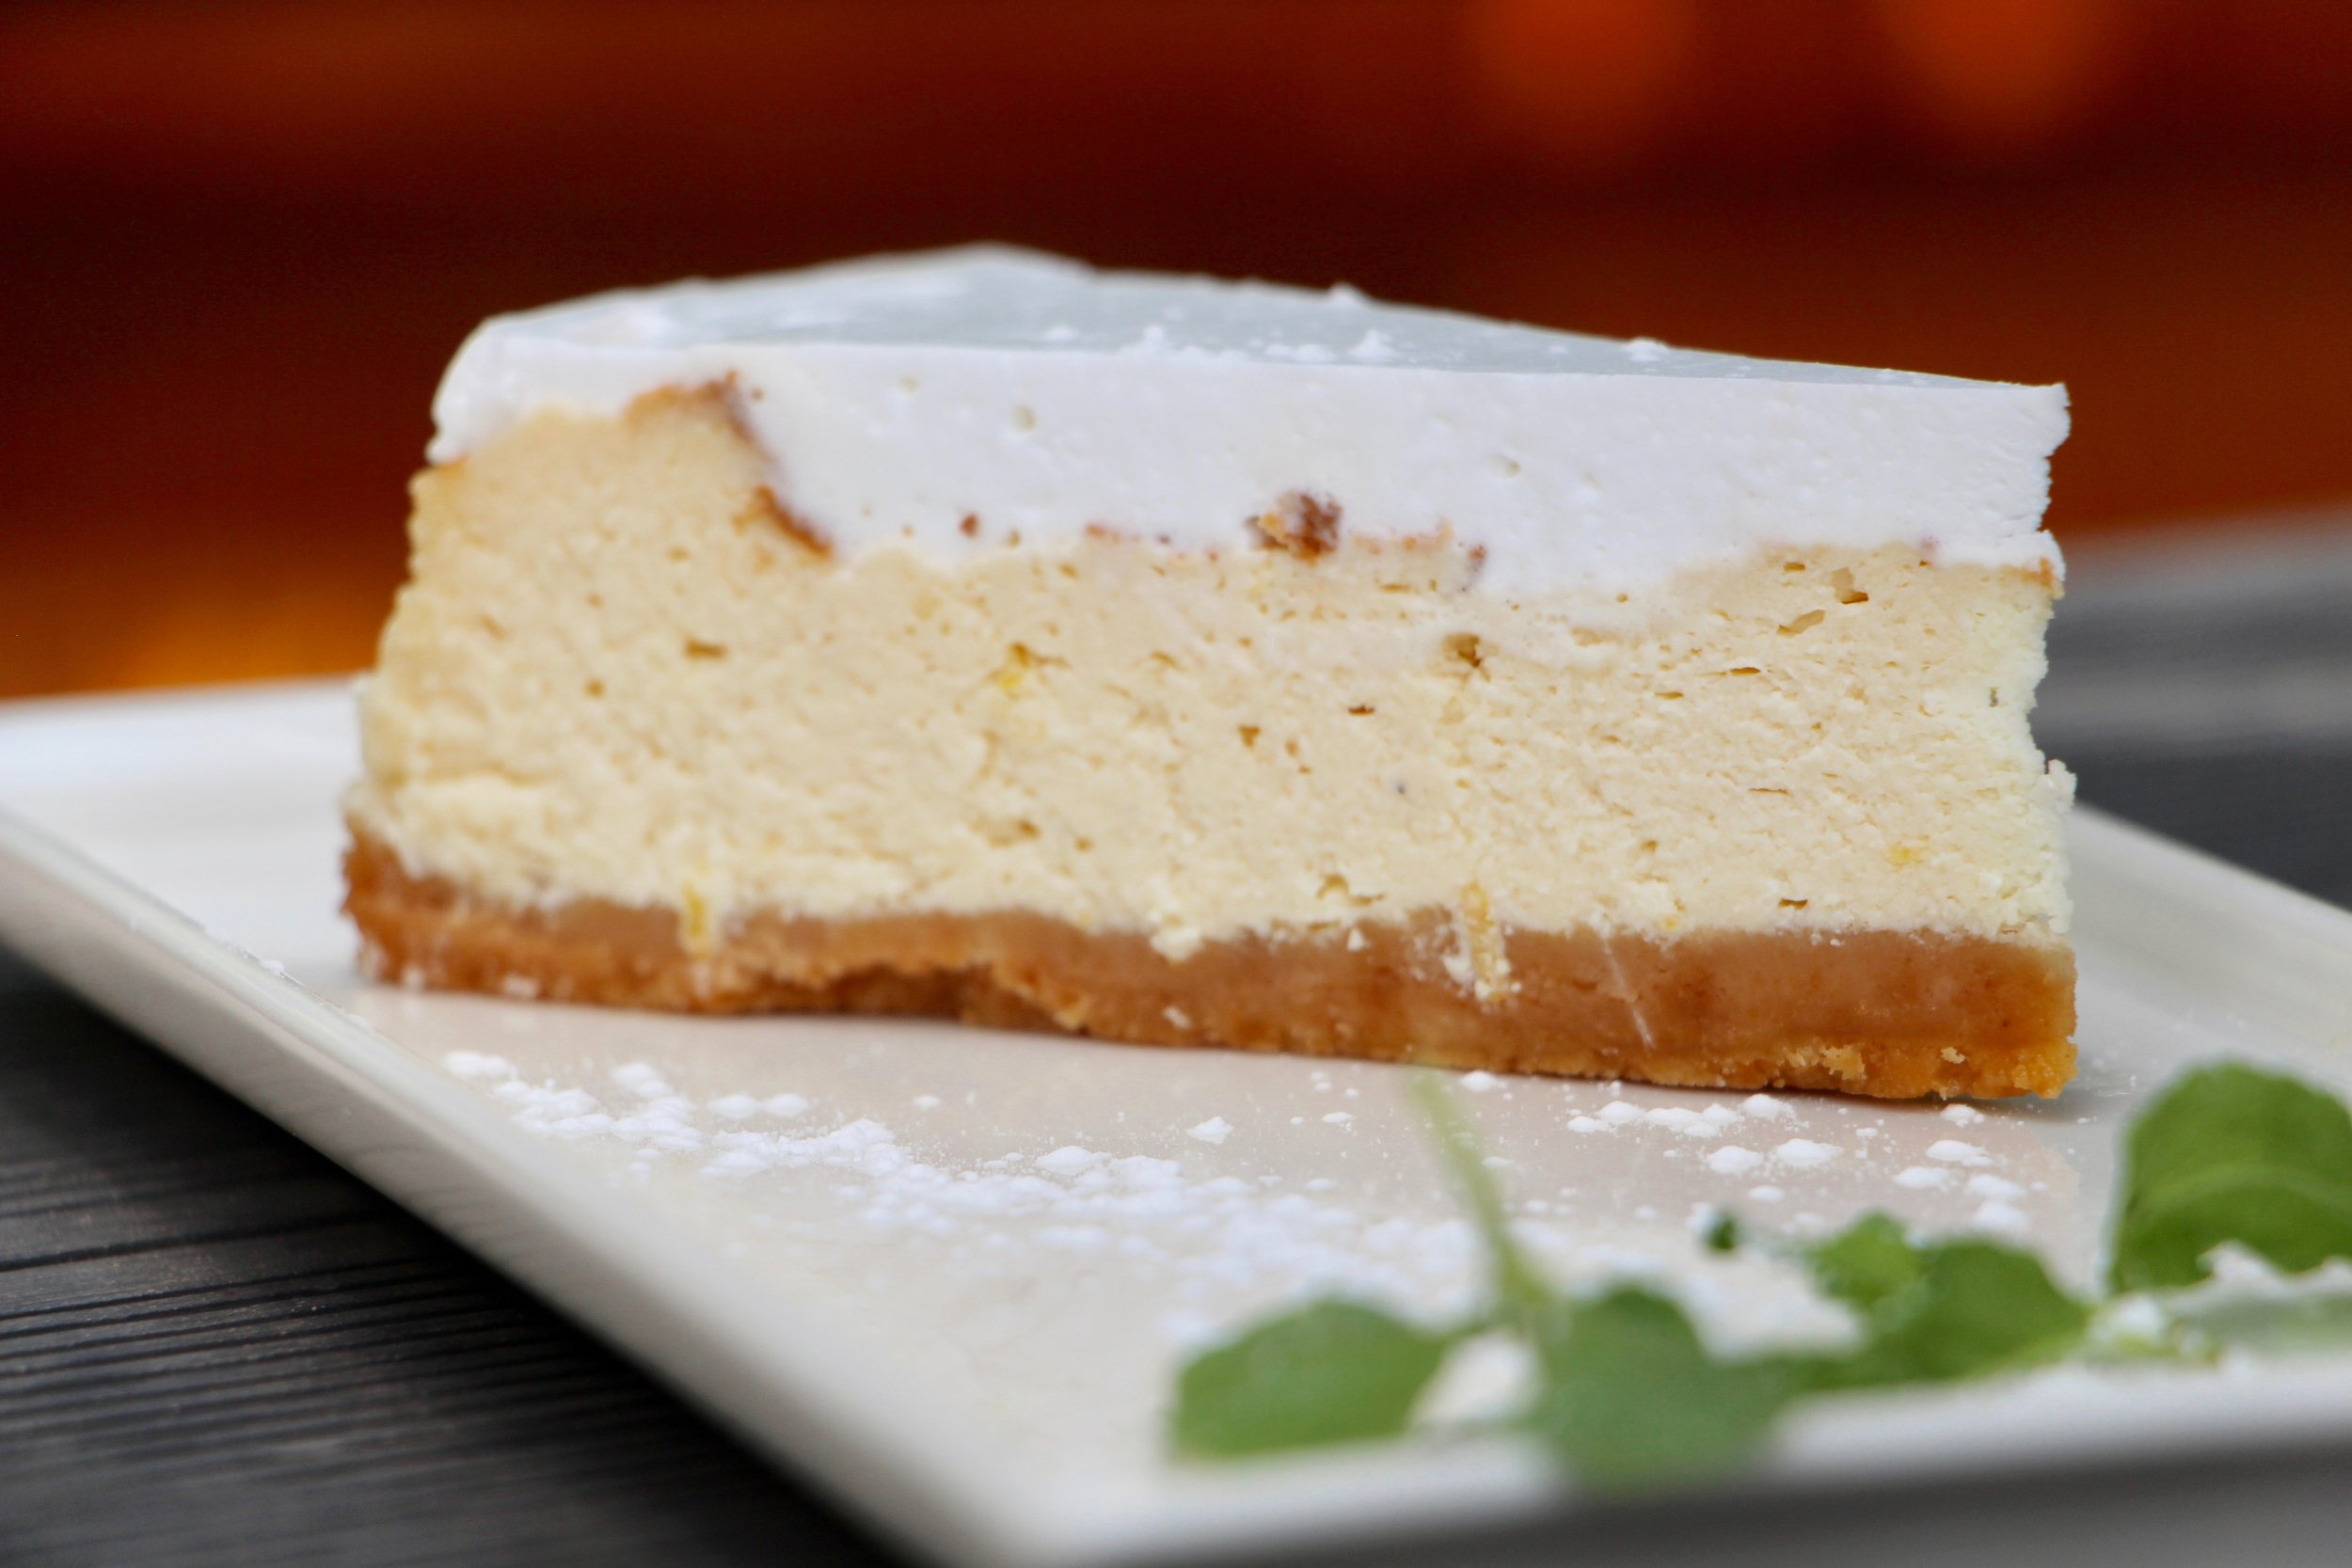 We'll save you the trip to new York with our delicious baked New York cheesecake! Seriously, put your passport away and avoid the pesky airport lines, and instead enjoy this luscious cheesecake.